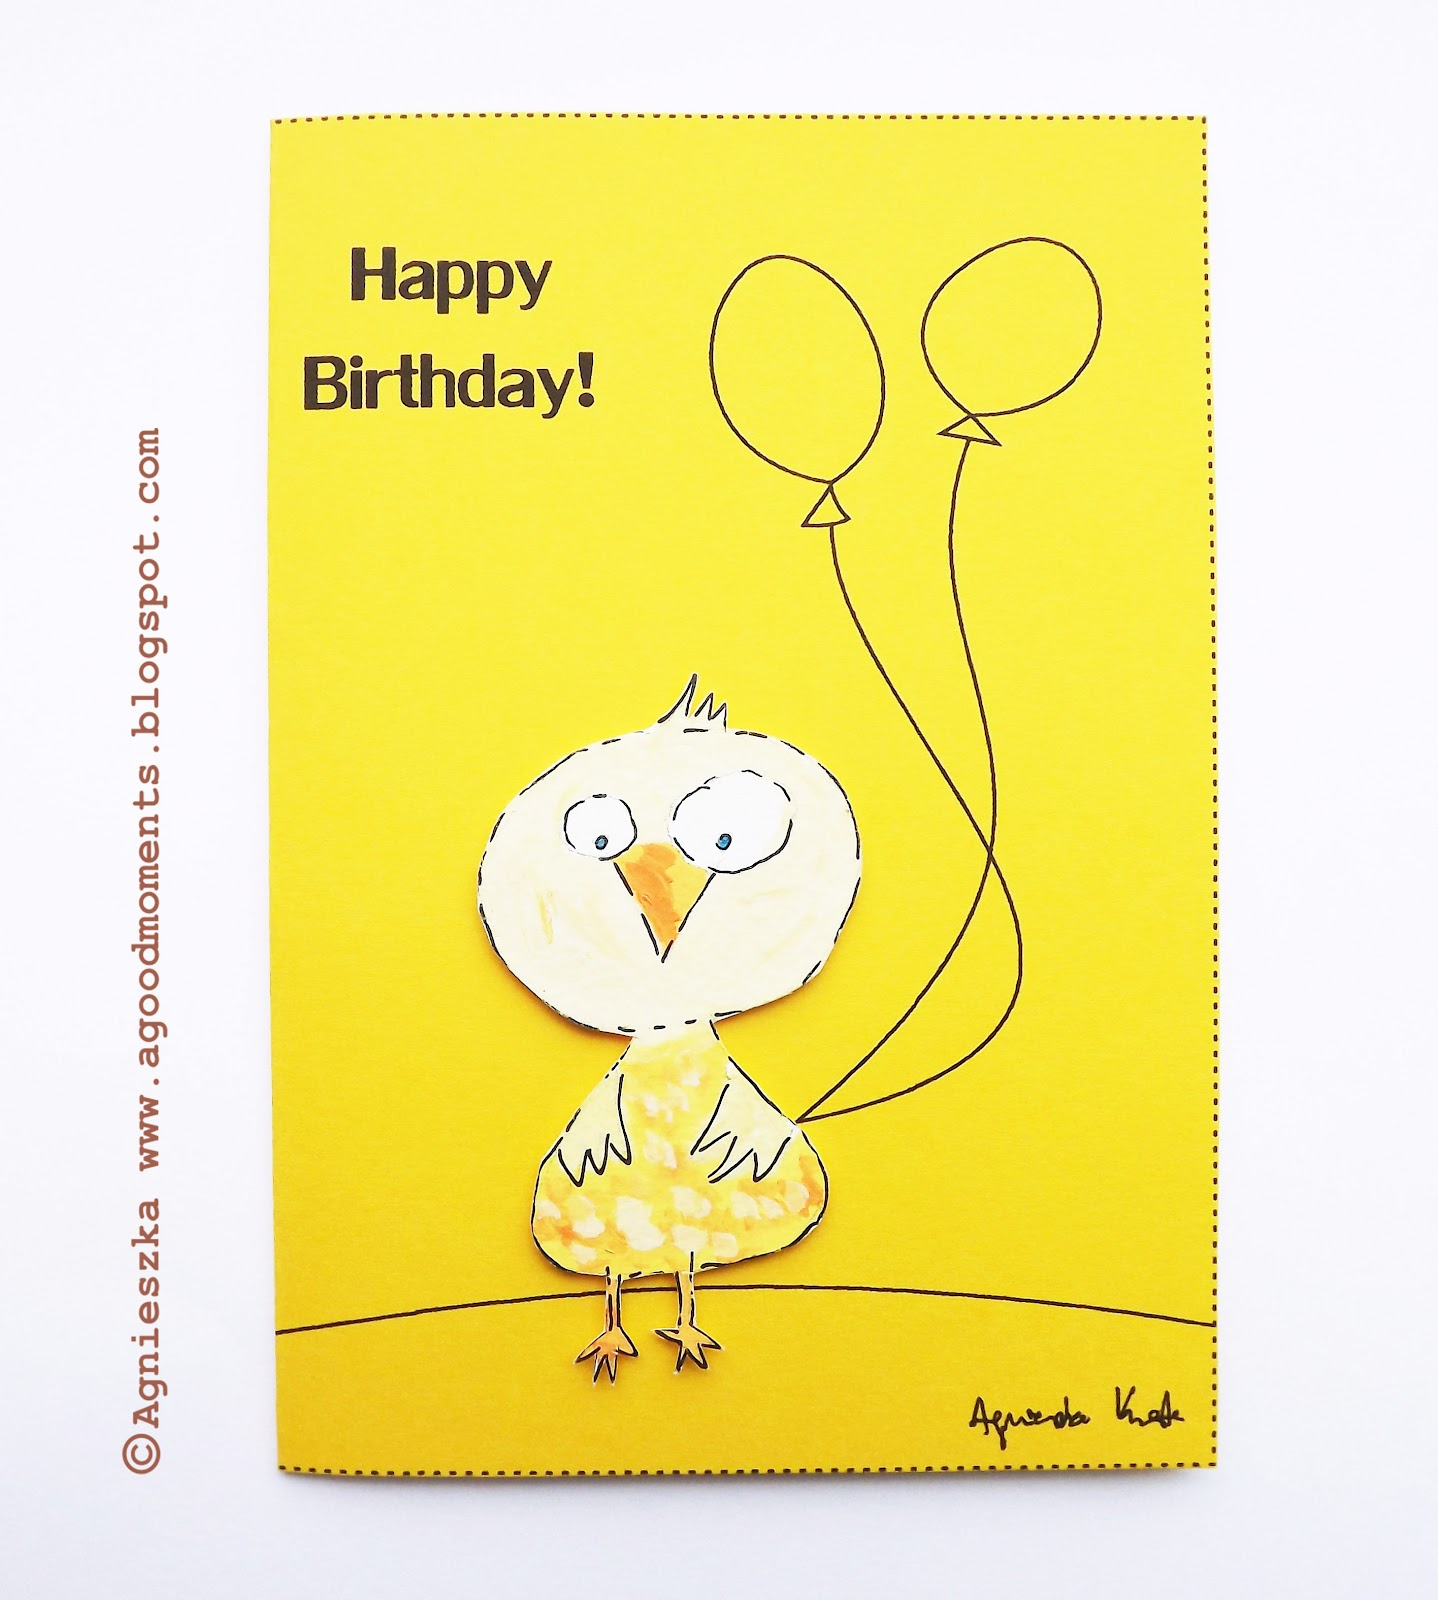 Good Moments Funny Birthday Card Ͽ�mieszna Kartka Urodzinowa: Good Moments: Cartoon Chicken Birthday Card / Kartka